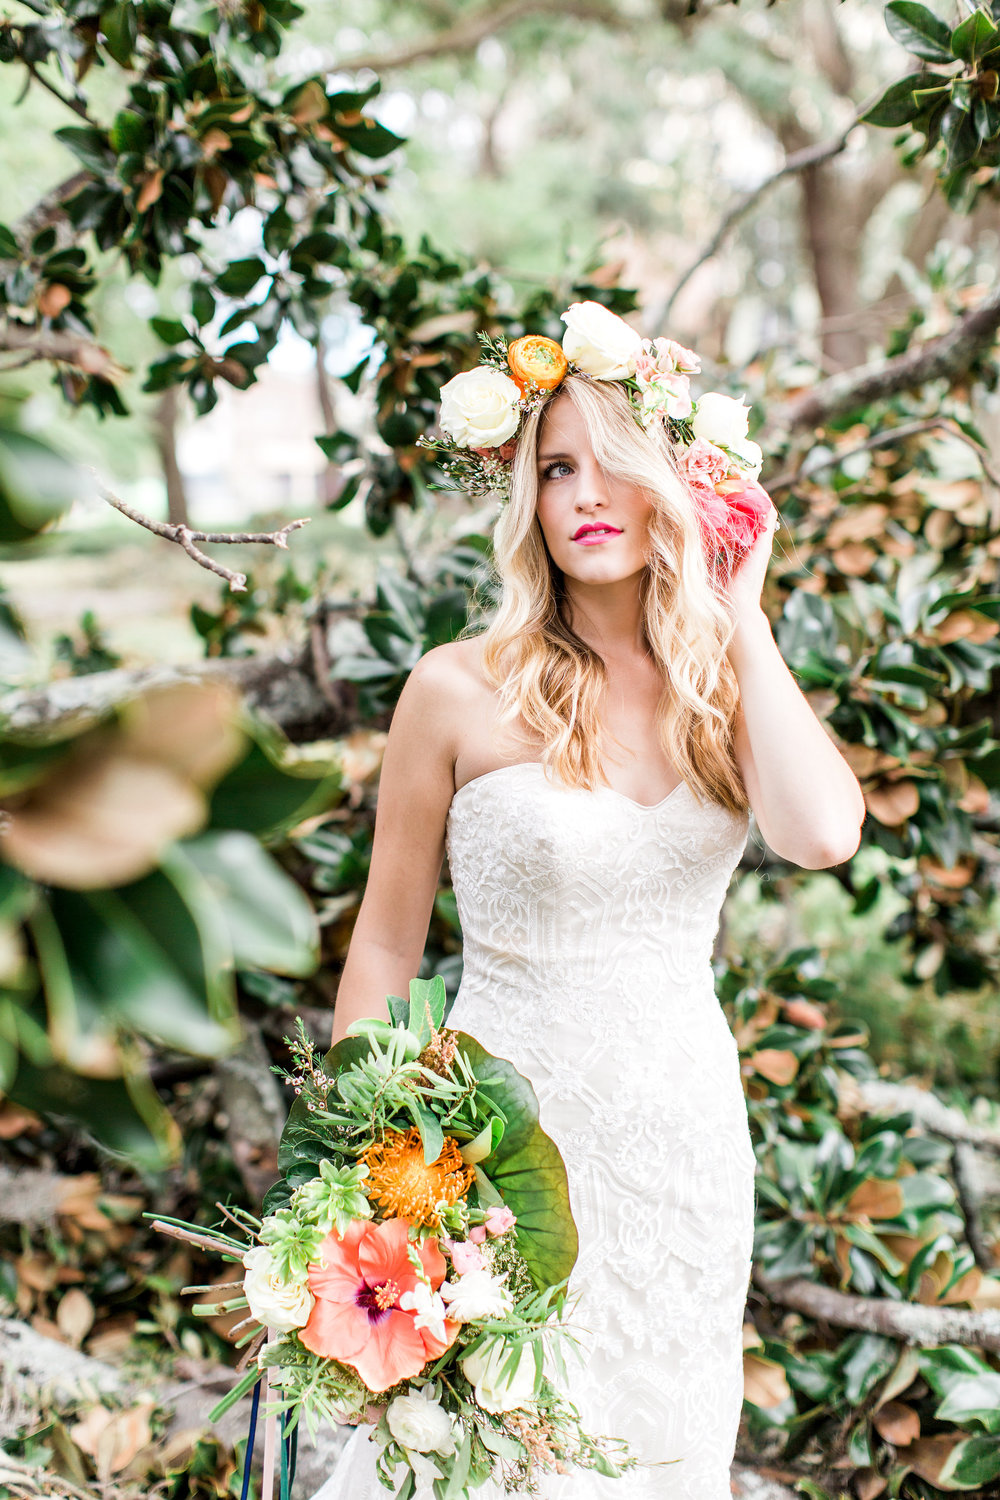 AptBPhoto_IvoryBeau_FallenTrees-fredericka-maggie-sottero-ivory-and-beau-savannah-bridal-boutique-savannah-wedding-dresses-flower-crown-savannah-bridal-bouquet-savannah-wedding-florist.jpg